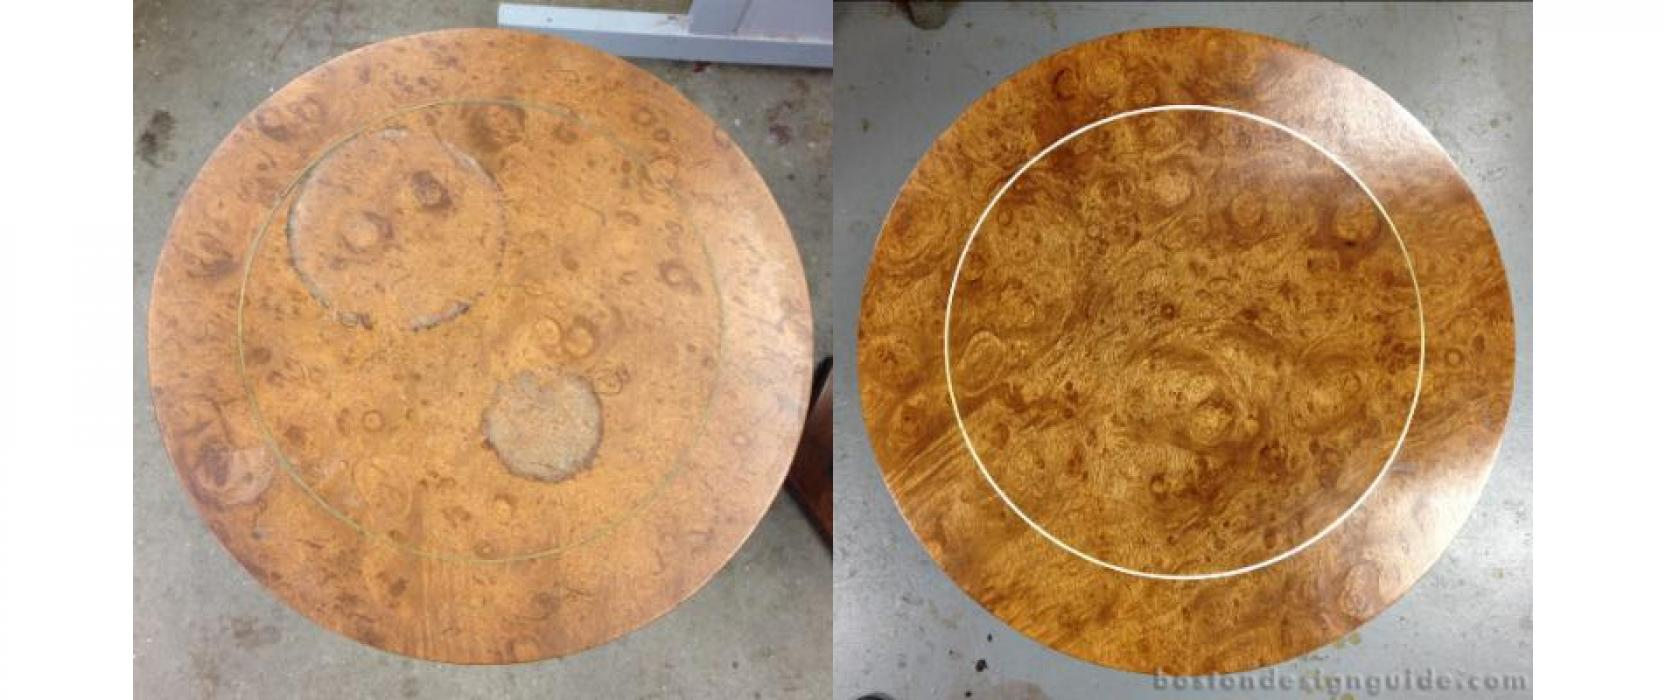 Damaged Furniture Restoration New England